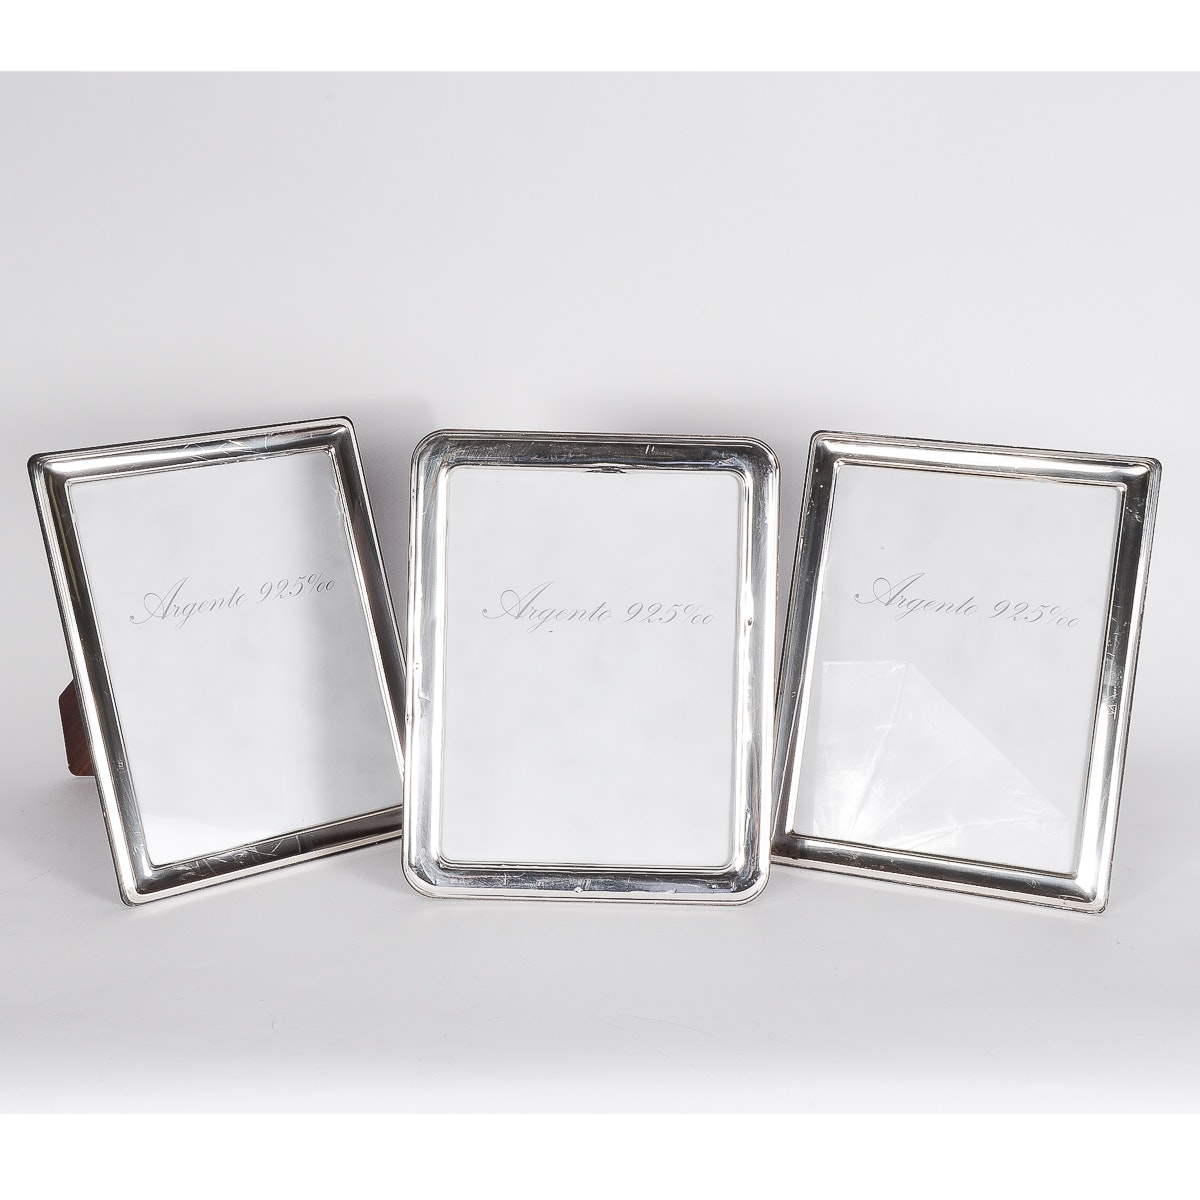 Collection of Silver Picture Frames